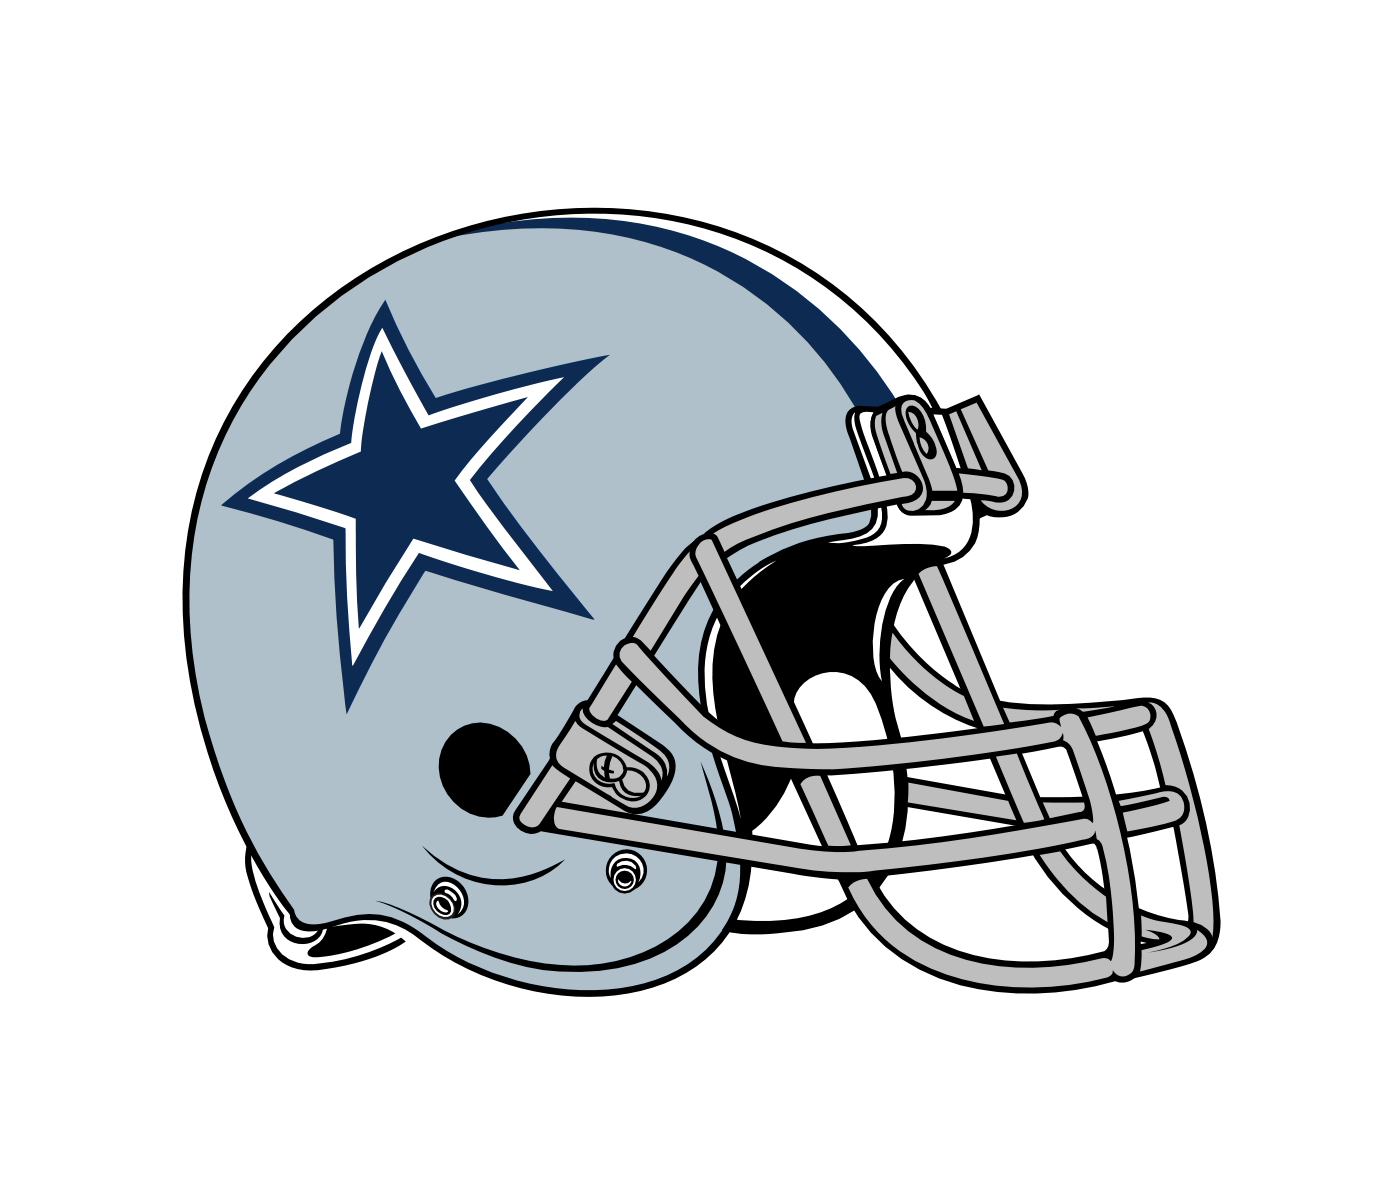 Clipart at getdrawings com. Dallas cowboys helmet png jpg black and white stock